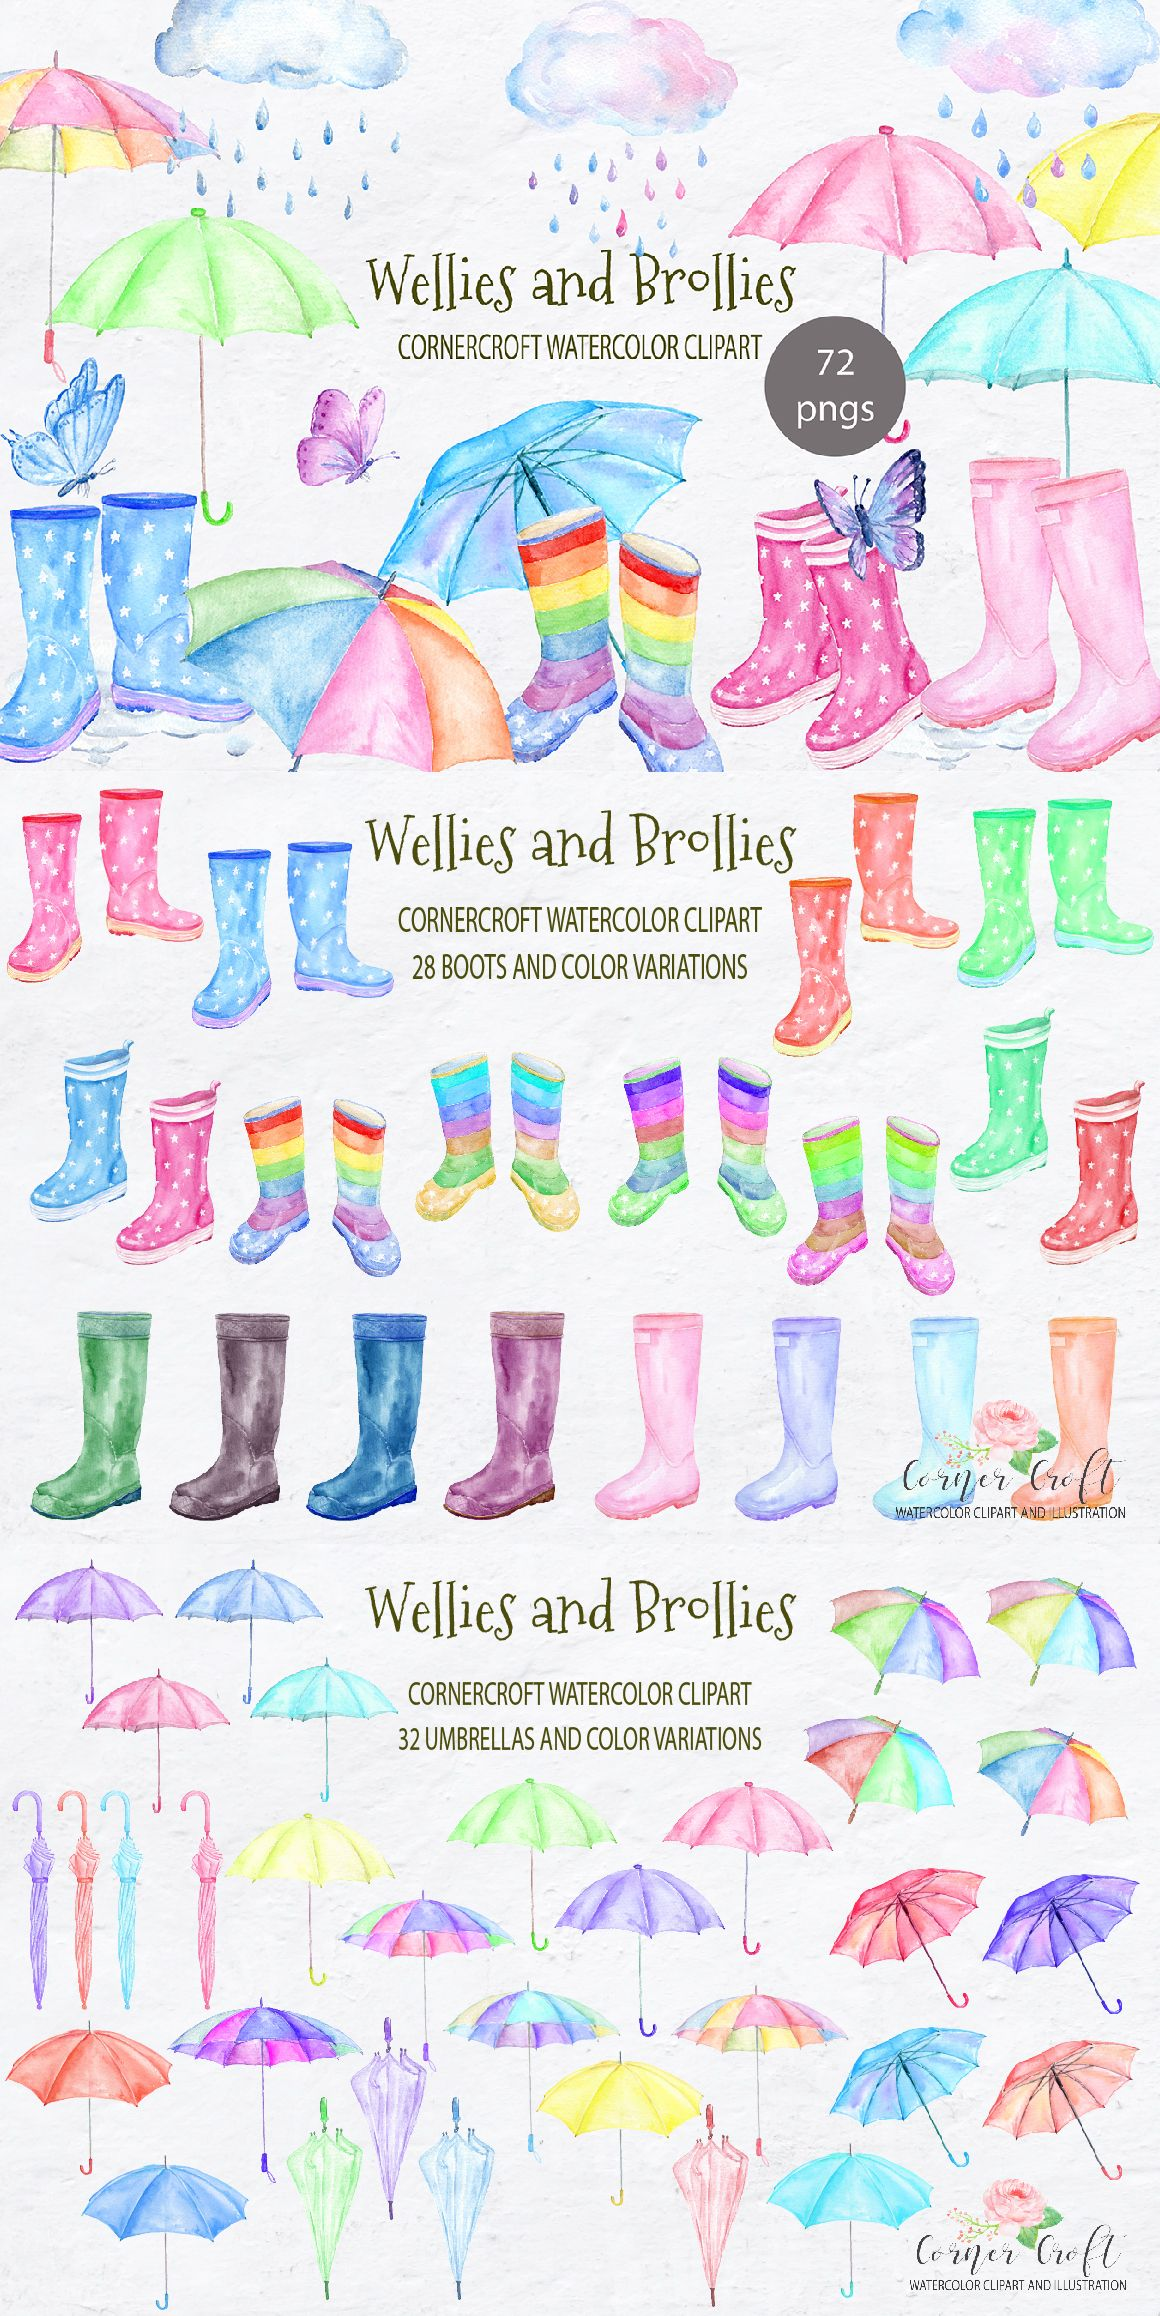 Wellies And Brollies Clipart Watercolor Rain Boots Umbrella